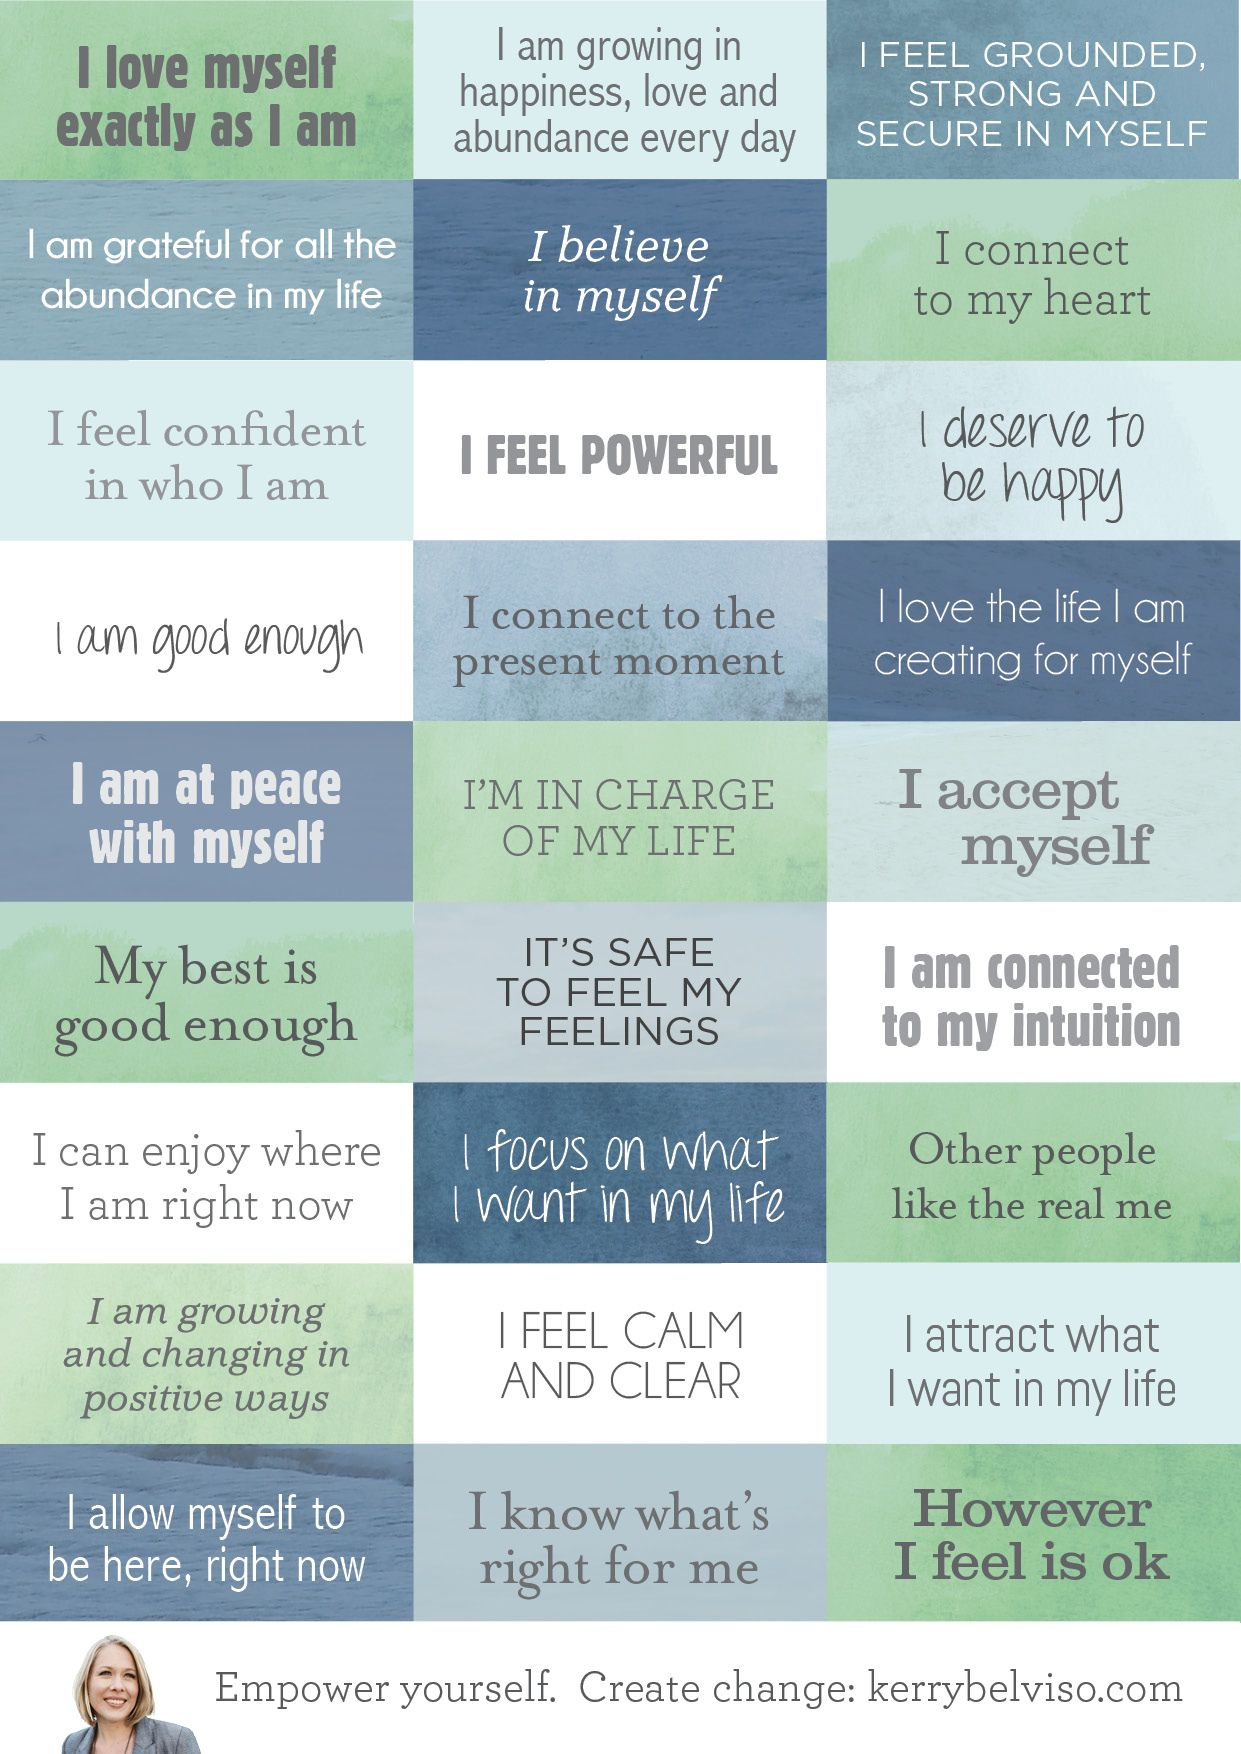 Affirmations poster: I love myself exactly as I am, I feel powerful, I deserve to be happy. Free download from www.kerrybelviso.com x